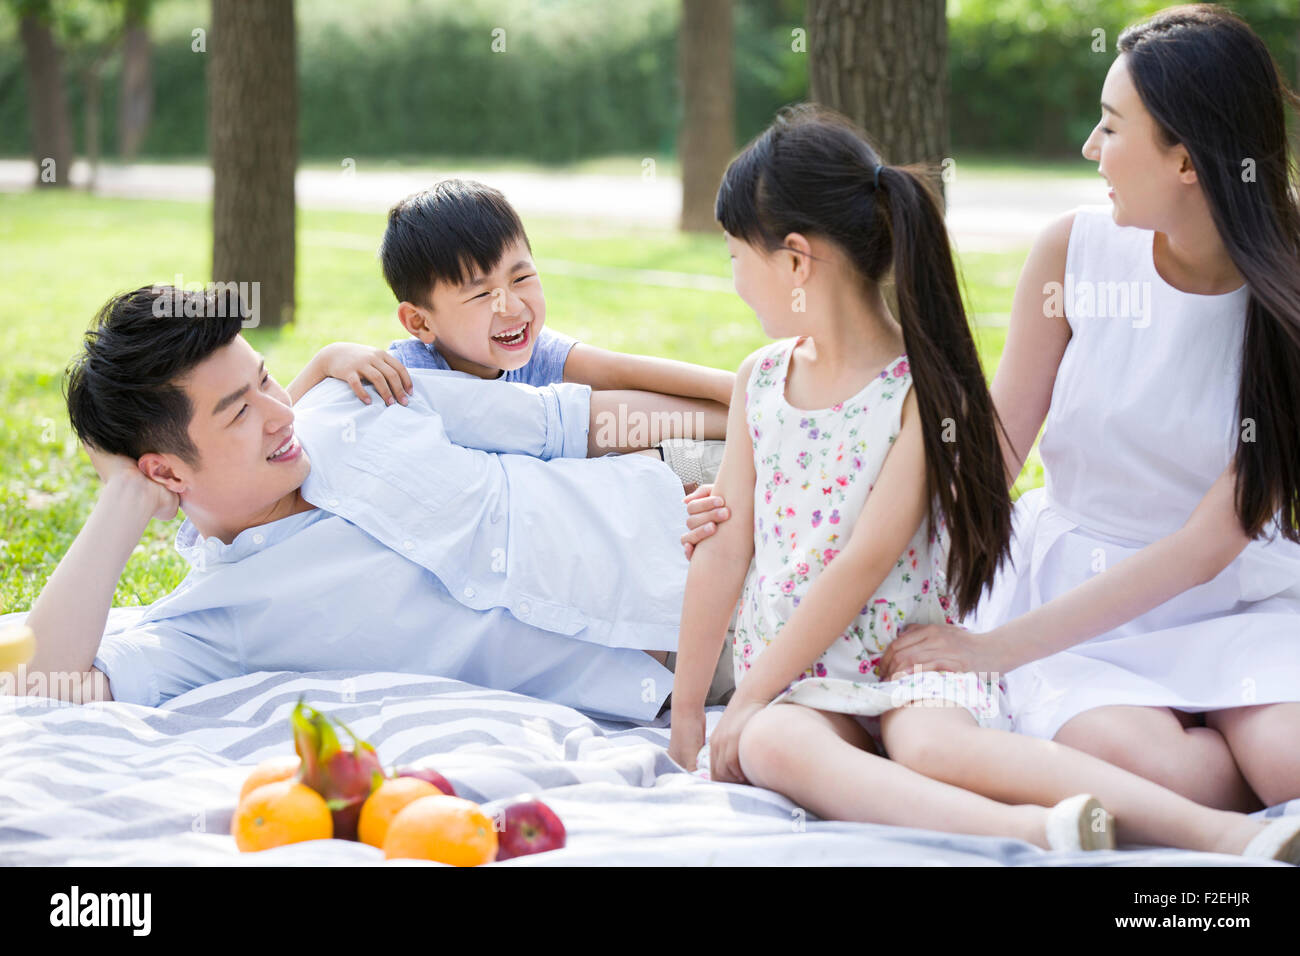 Happy young family having picnic on grass - Stock Image